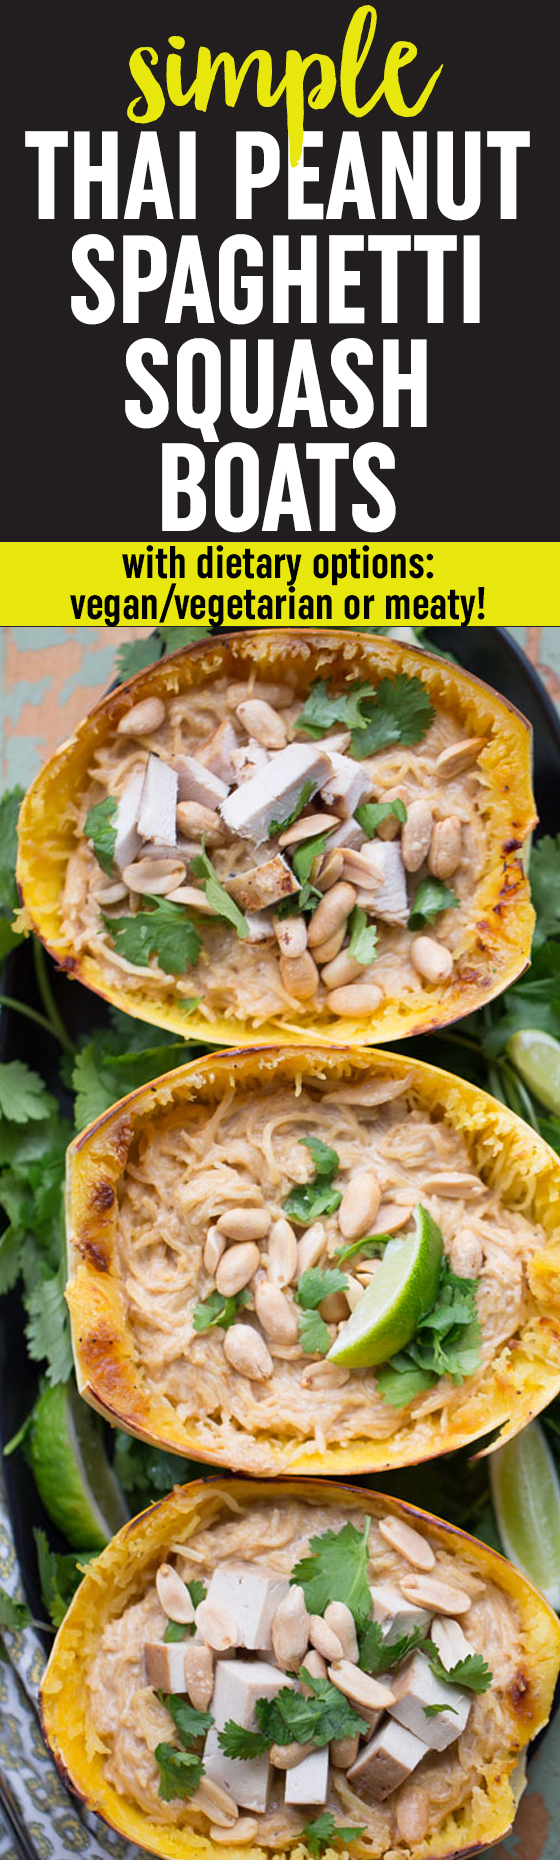 Simple Thai Peanut Spaghetti Squash Boats - Thai-inspired peanut sauce tossed with spaghetti squash and topped with crunchy peanuts and cilantro. Top individual servings with tofu for the vegans/vegetarians and, if anyone in your house is carnivorously inclined, cooked chopped chicken for the meat-eaters. #simplespaghettisquash #spaghettisquashrecipe